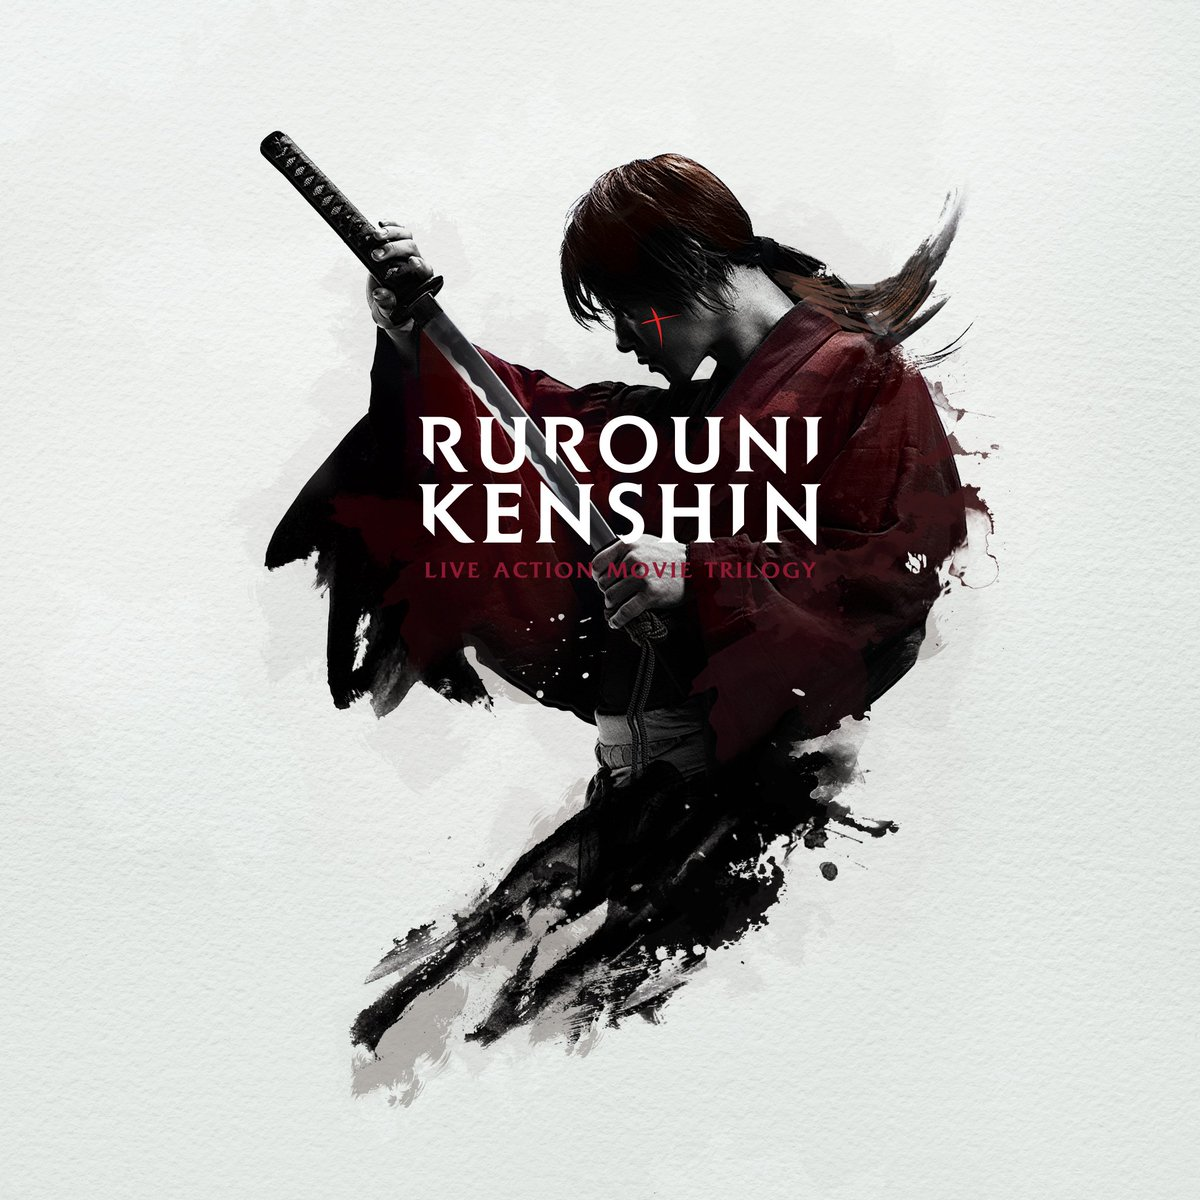 So this is not something I normally say but I REALLY LOVE THE NORTH AMERICA KEYART FOR RUROUNI KENSHIN MOVIES!! https://t.co/K1DyKQpObO